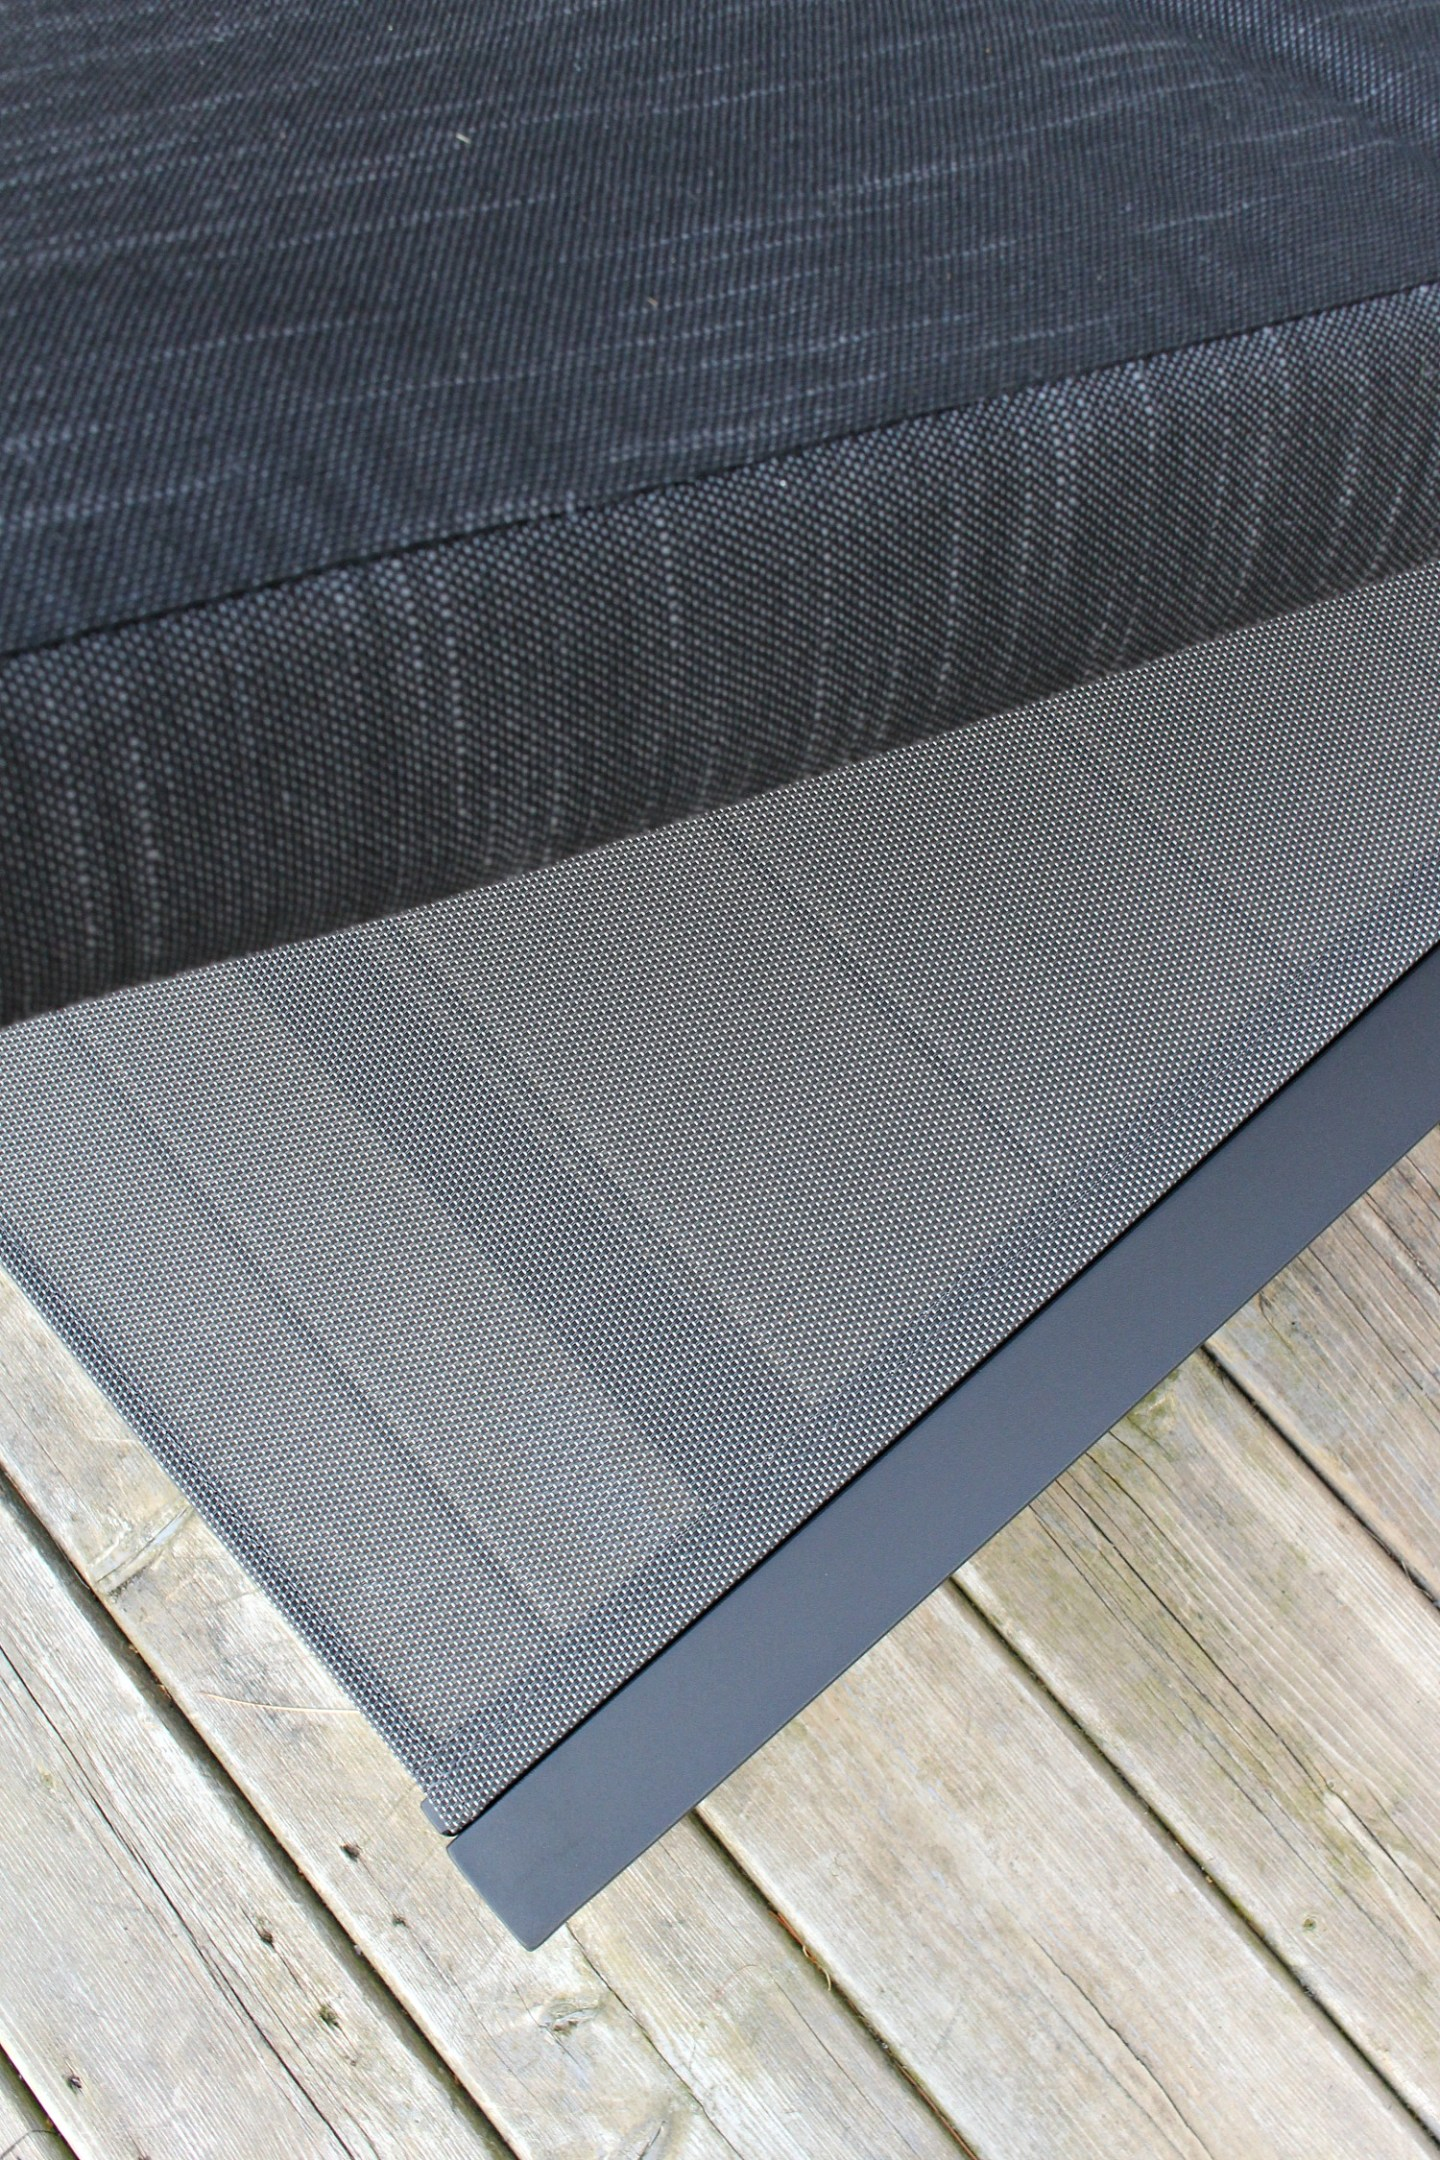 Patio lounger with mesh and foam cushion